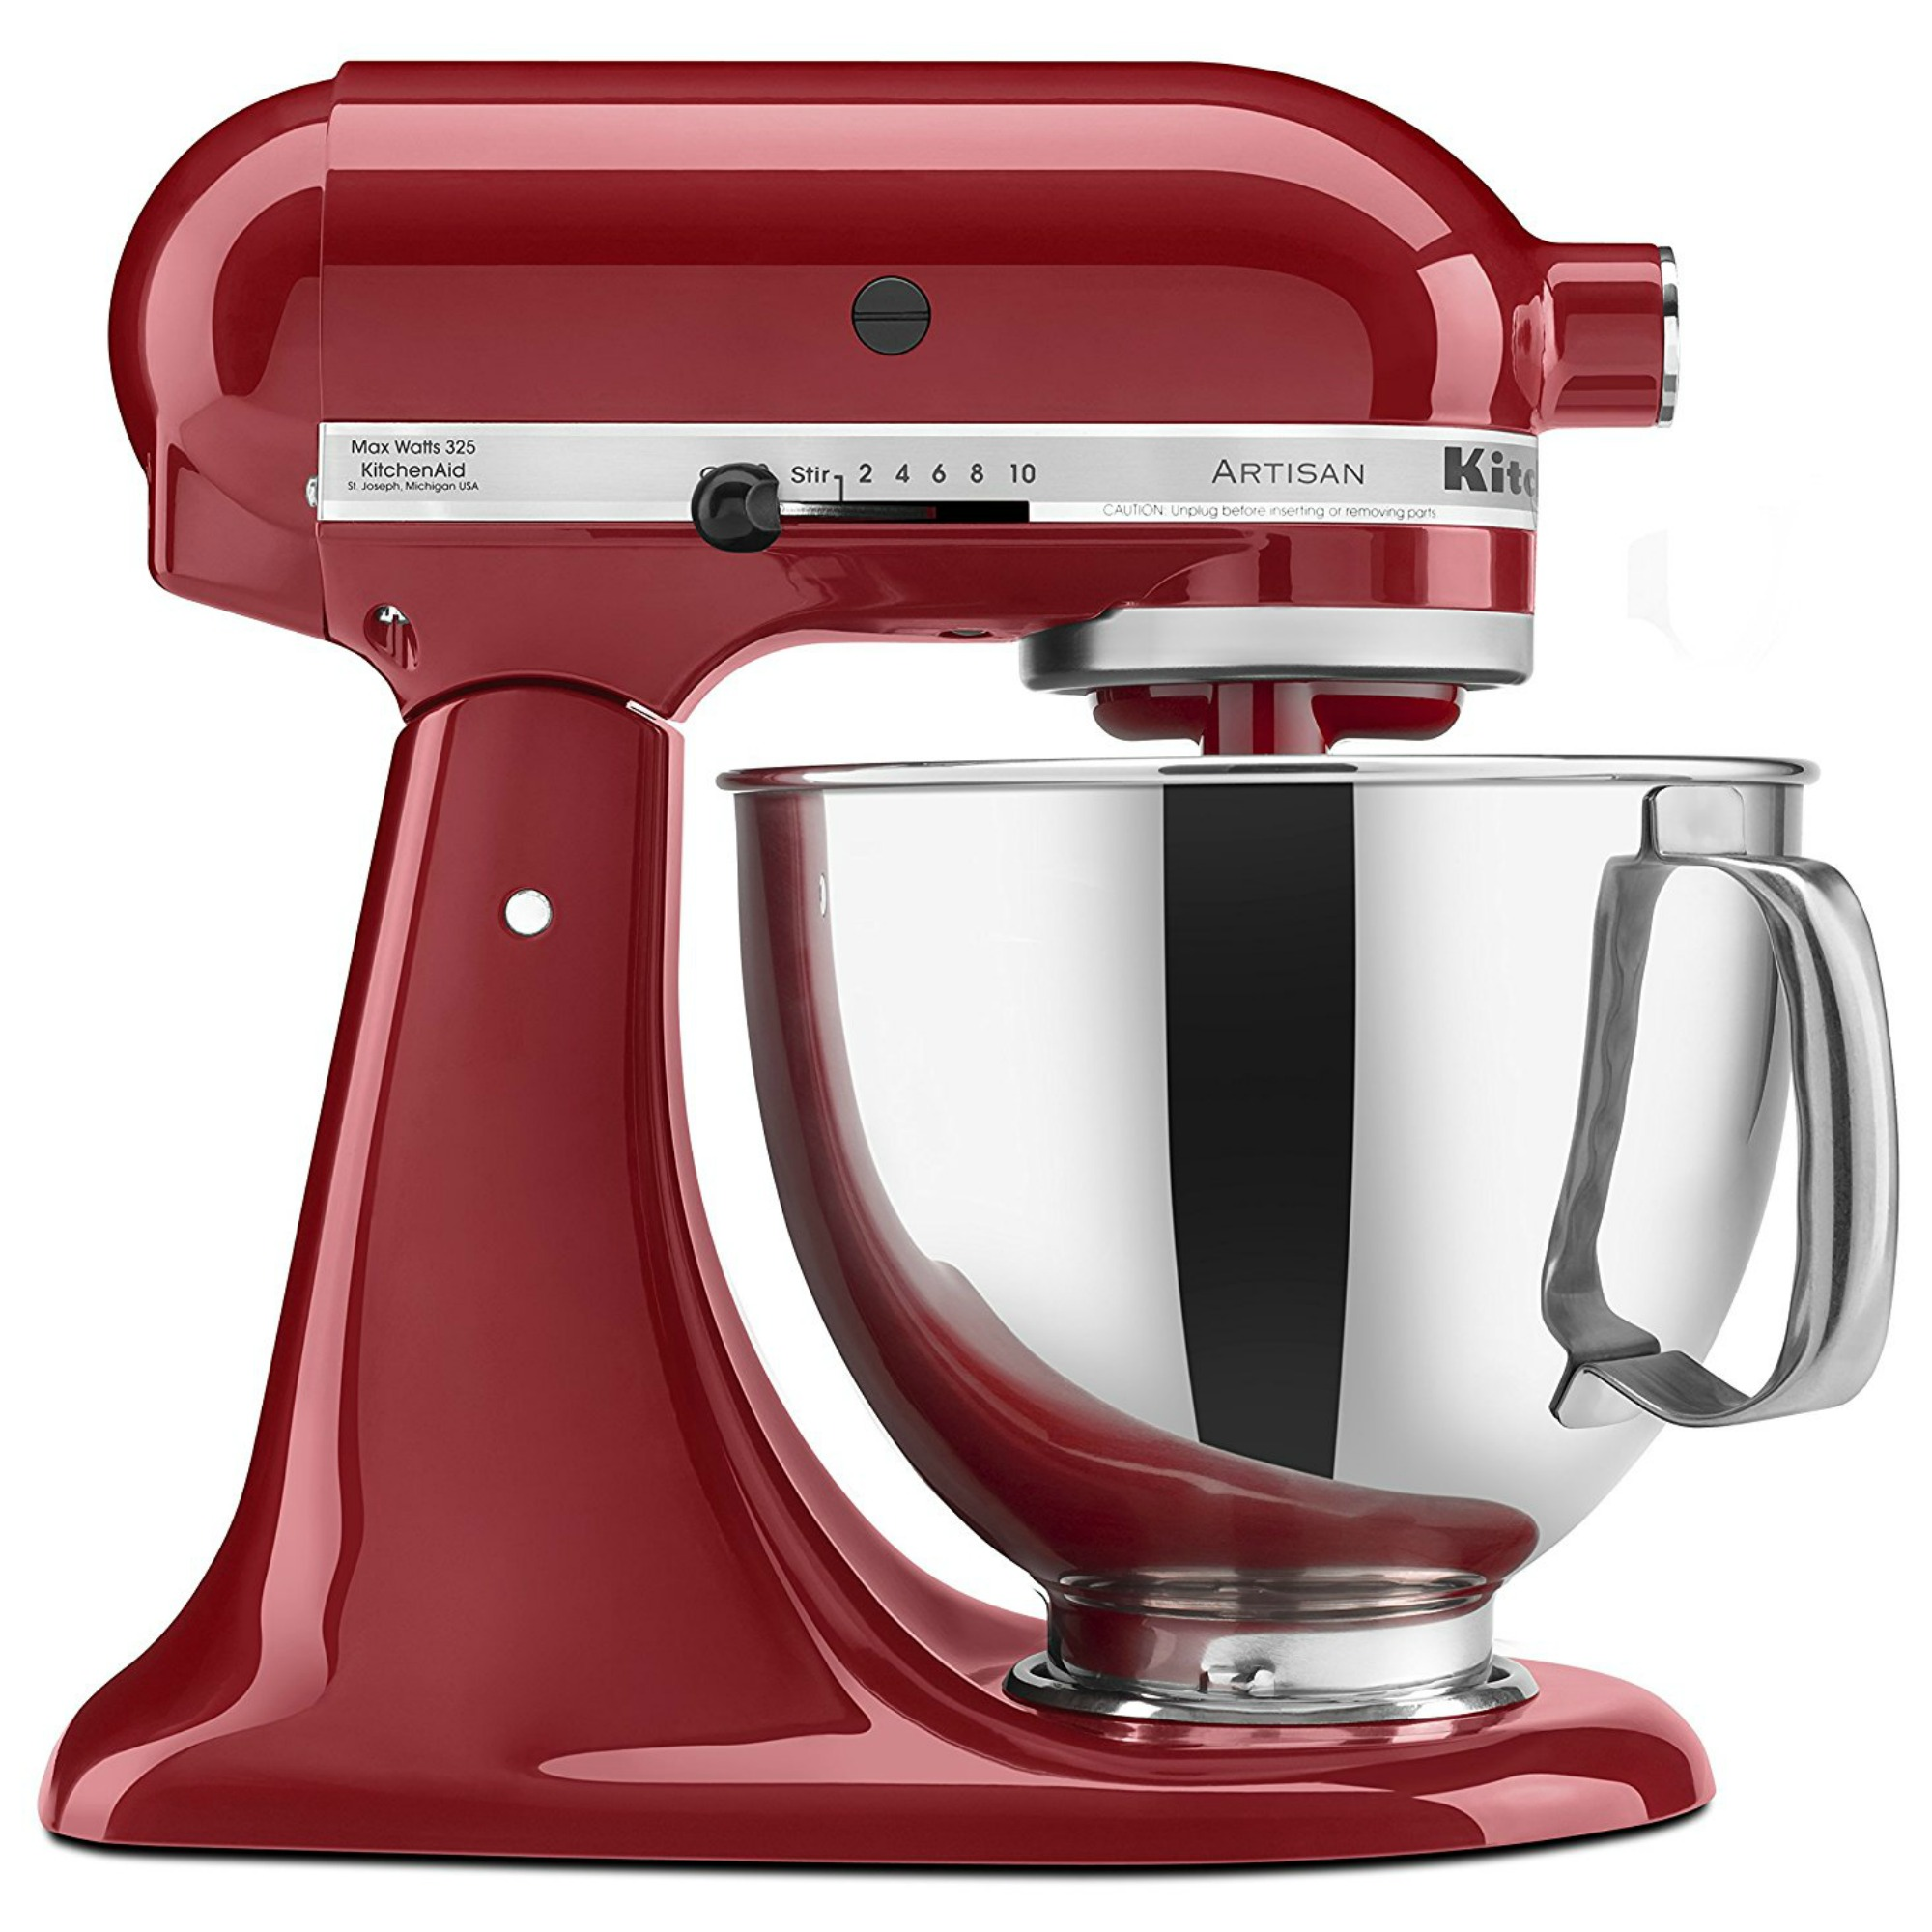 artisan lowest trend tfast and kitchenaid kitchen inspiring u giveaway aid mini mixer pics review price of